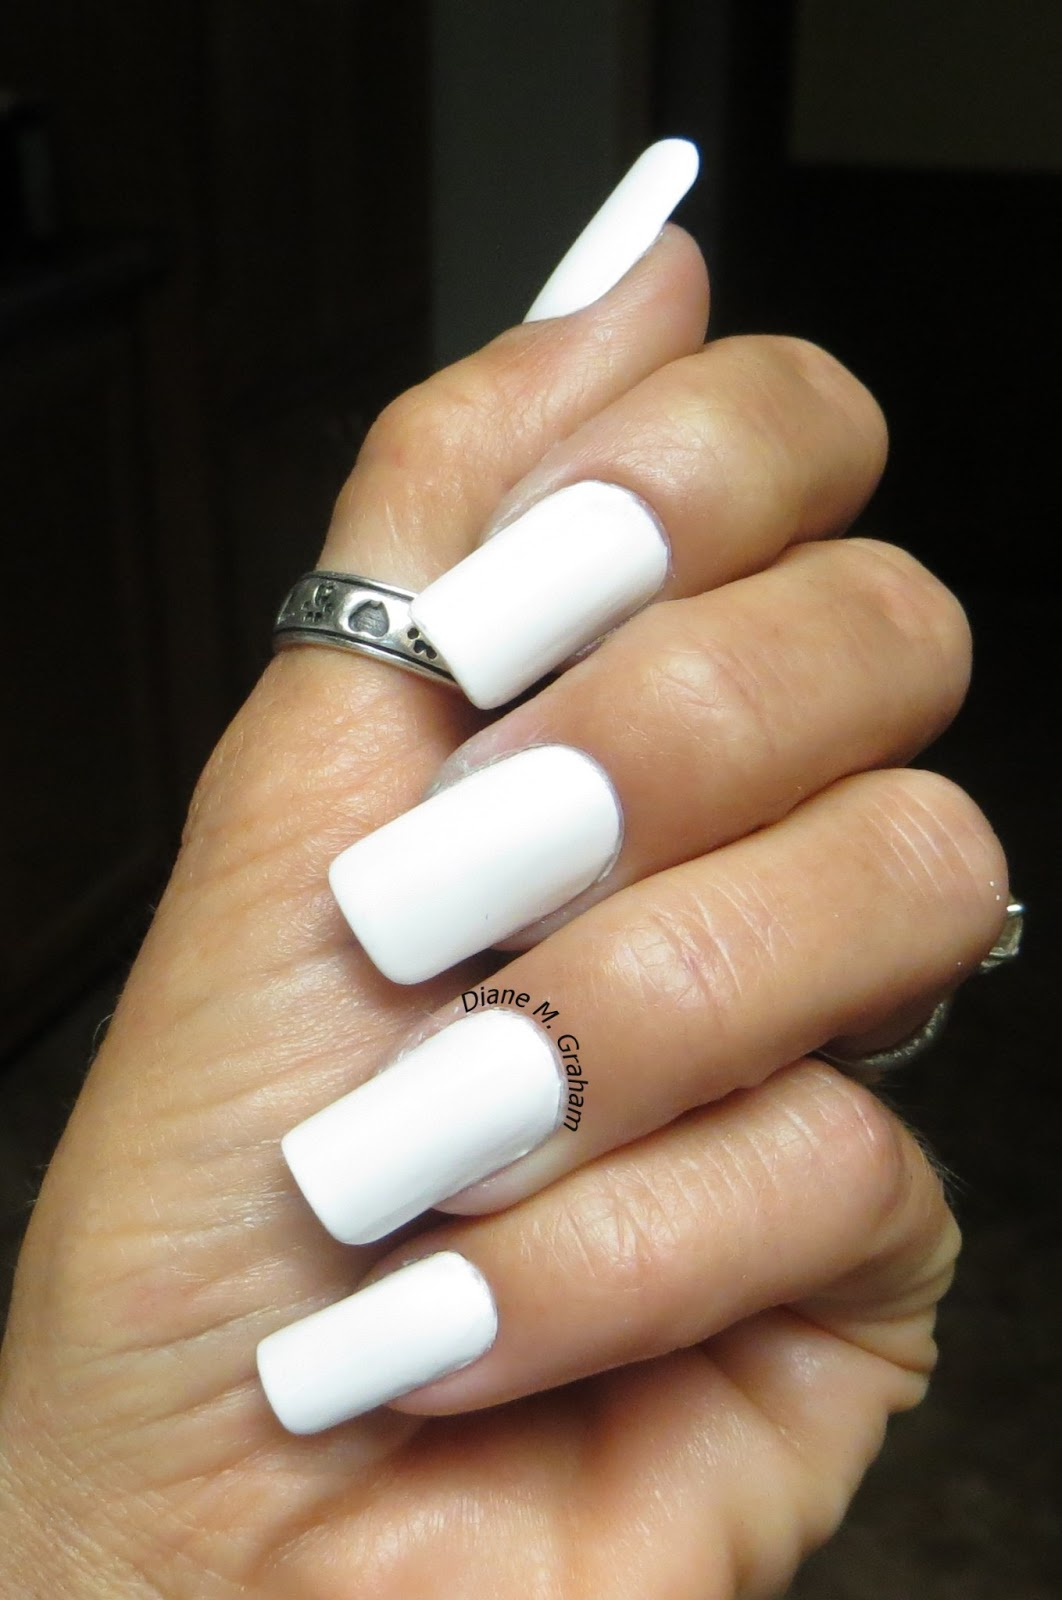 All White Nails With Design | www.pixshark.com - Images ...